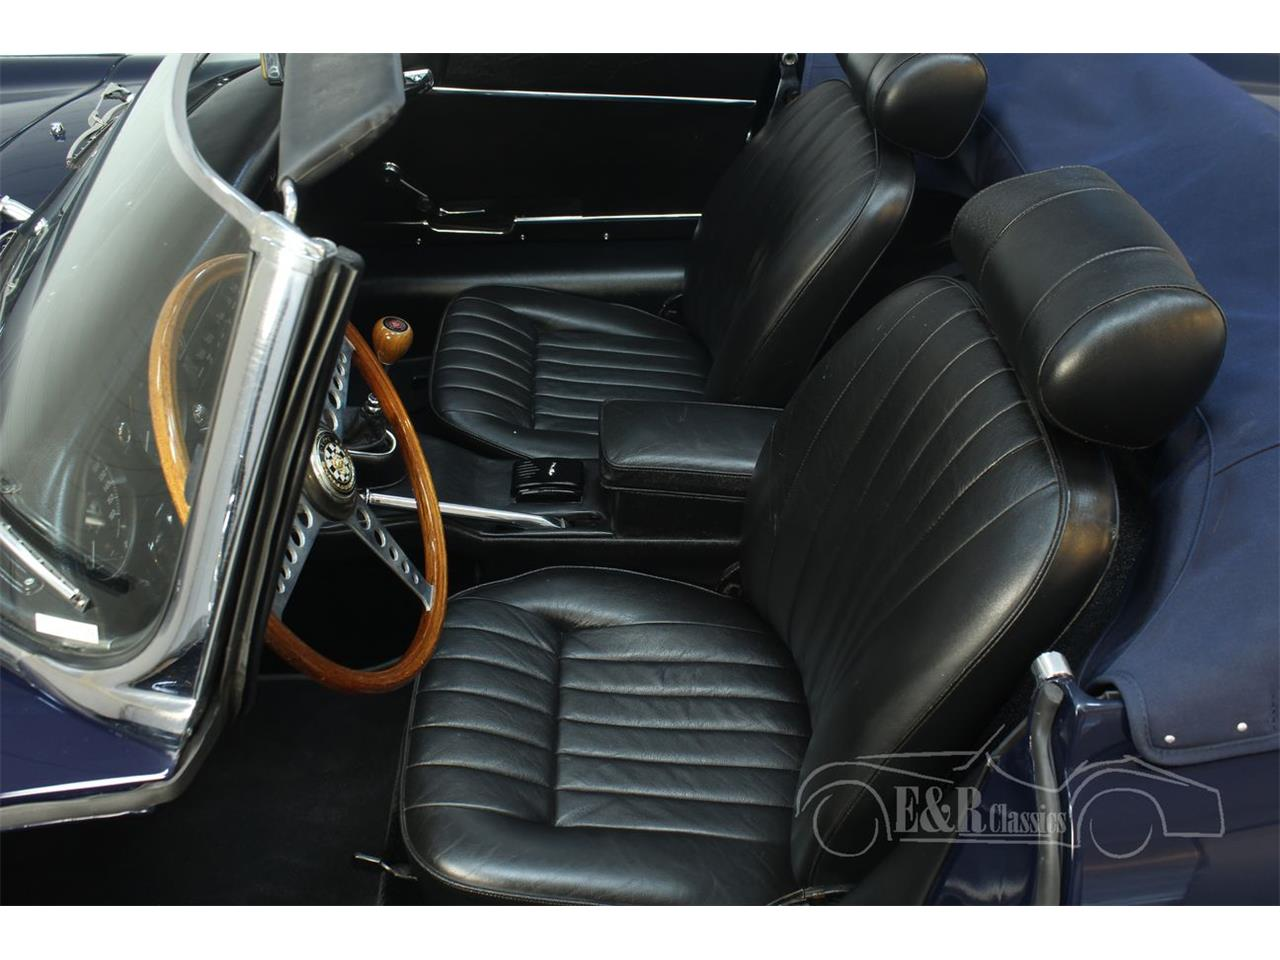 Large Picture of 1969 E-Type - $139,400.00 Offered by E & R Classics - Q45K